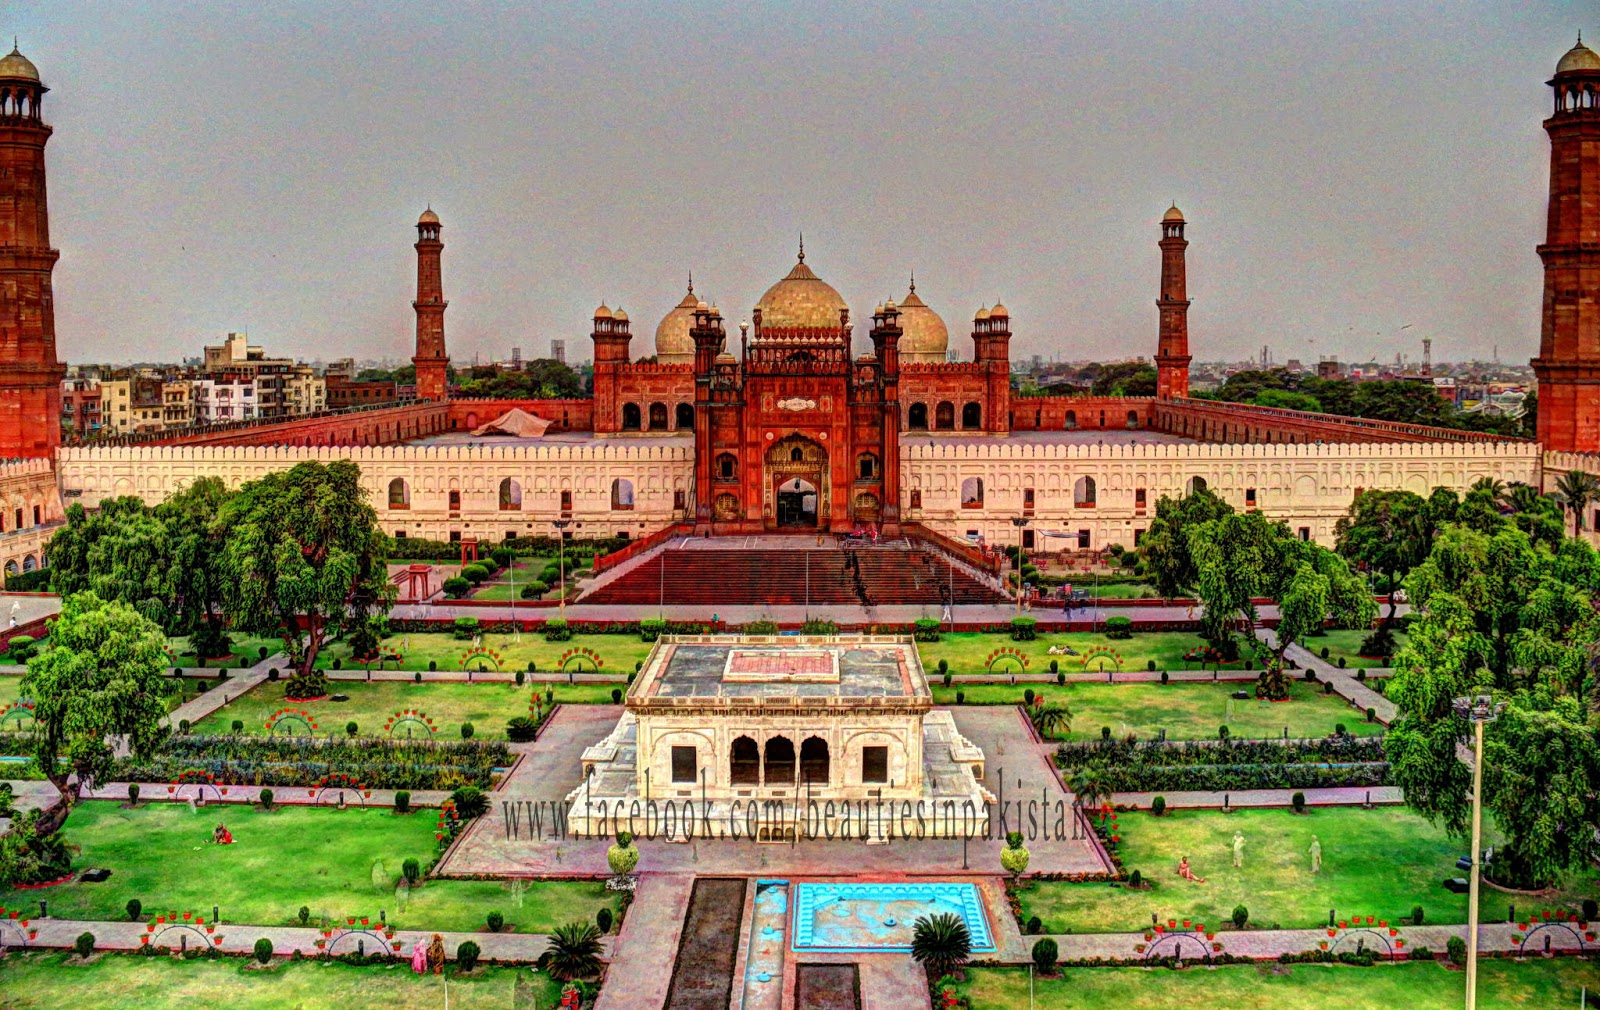 badshahi mosque Lahore: as part of his tour in pakistan for 'london is open' campaign, mayor of  london sadiq khan paid a visit to the historical badshahi.